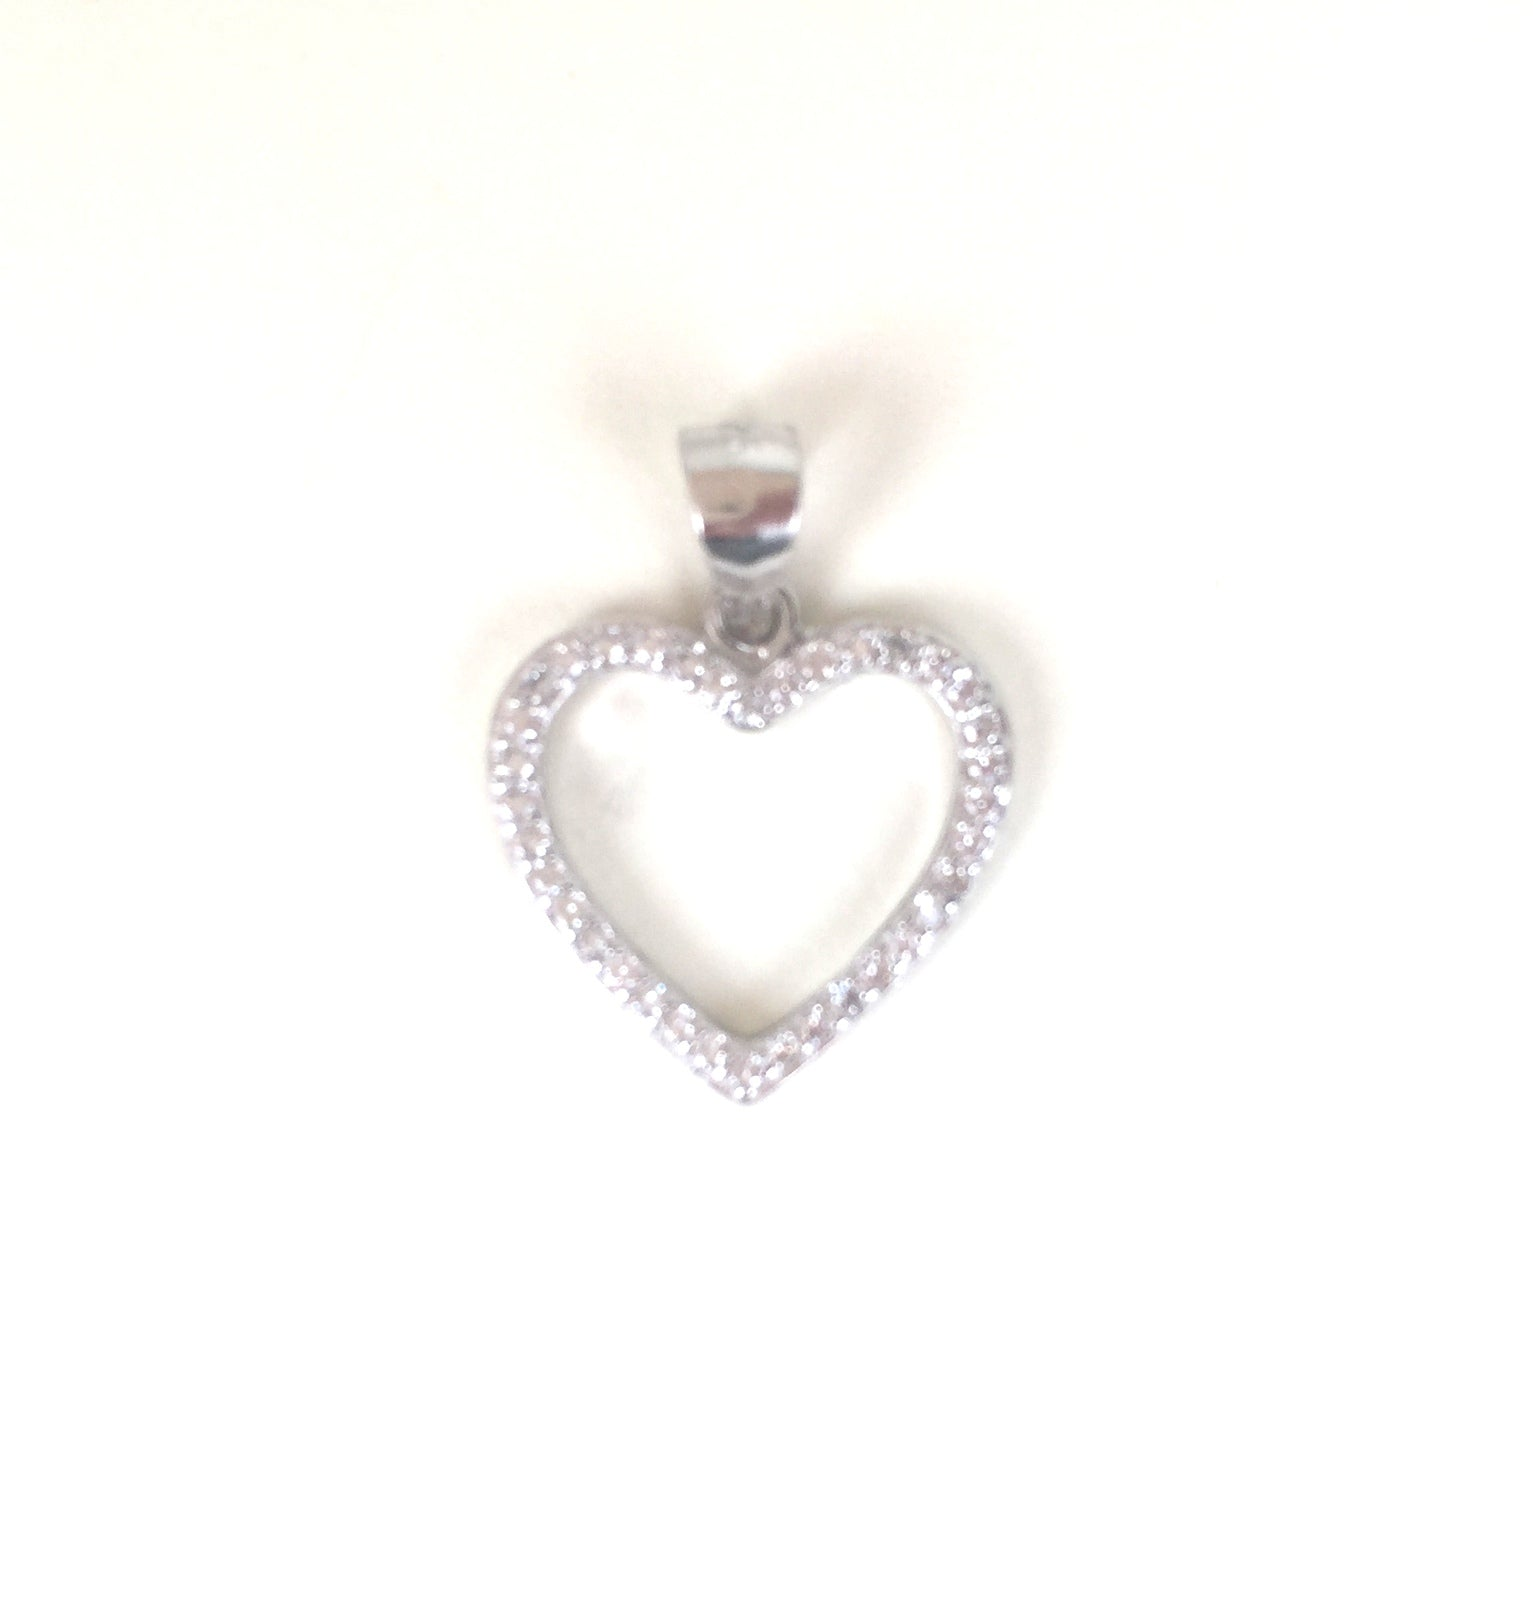 HEART PAVE CZ STERLING SILVER PENDANT